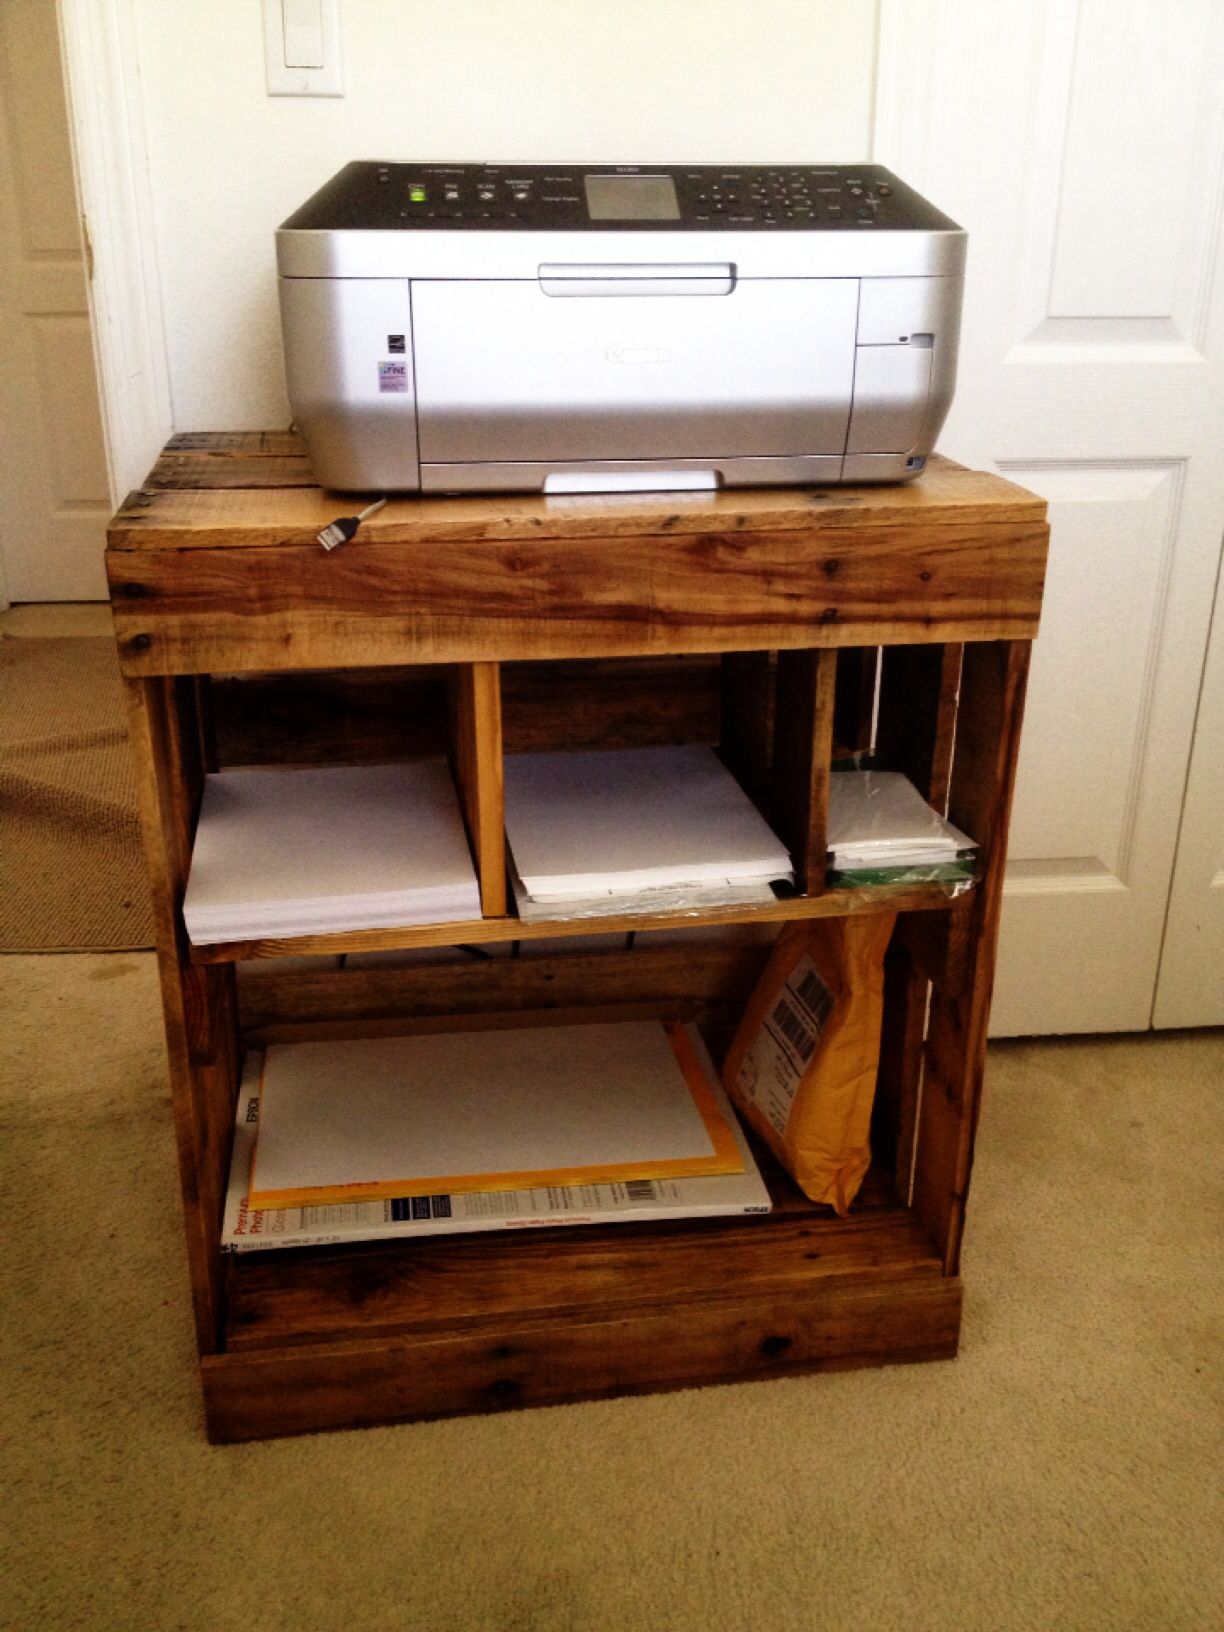 Pallet printer stand my husband made. | Pallet desks | Pinterest ...